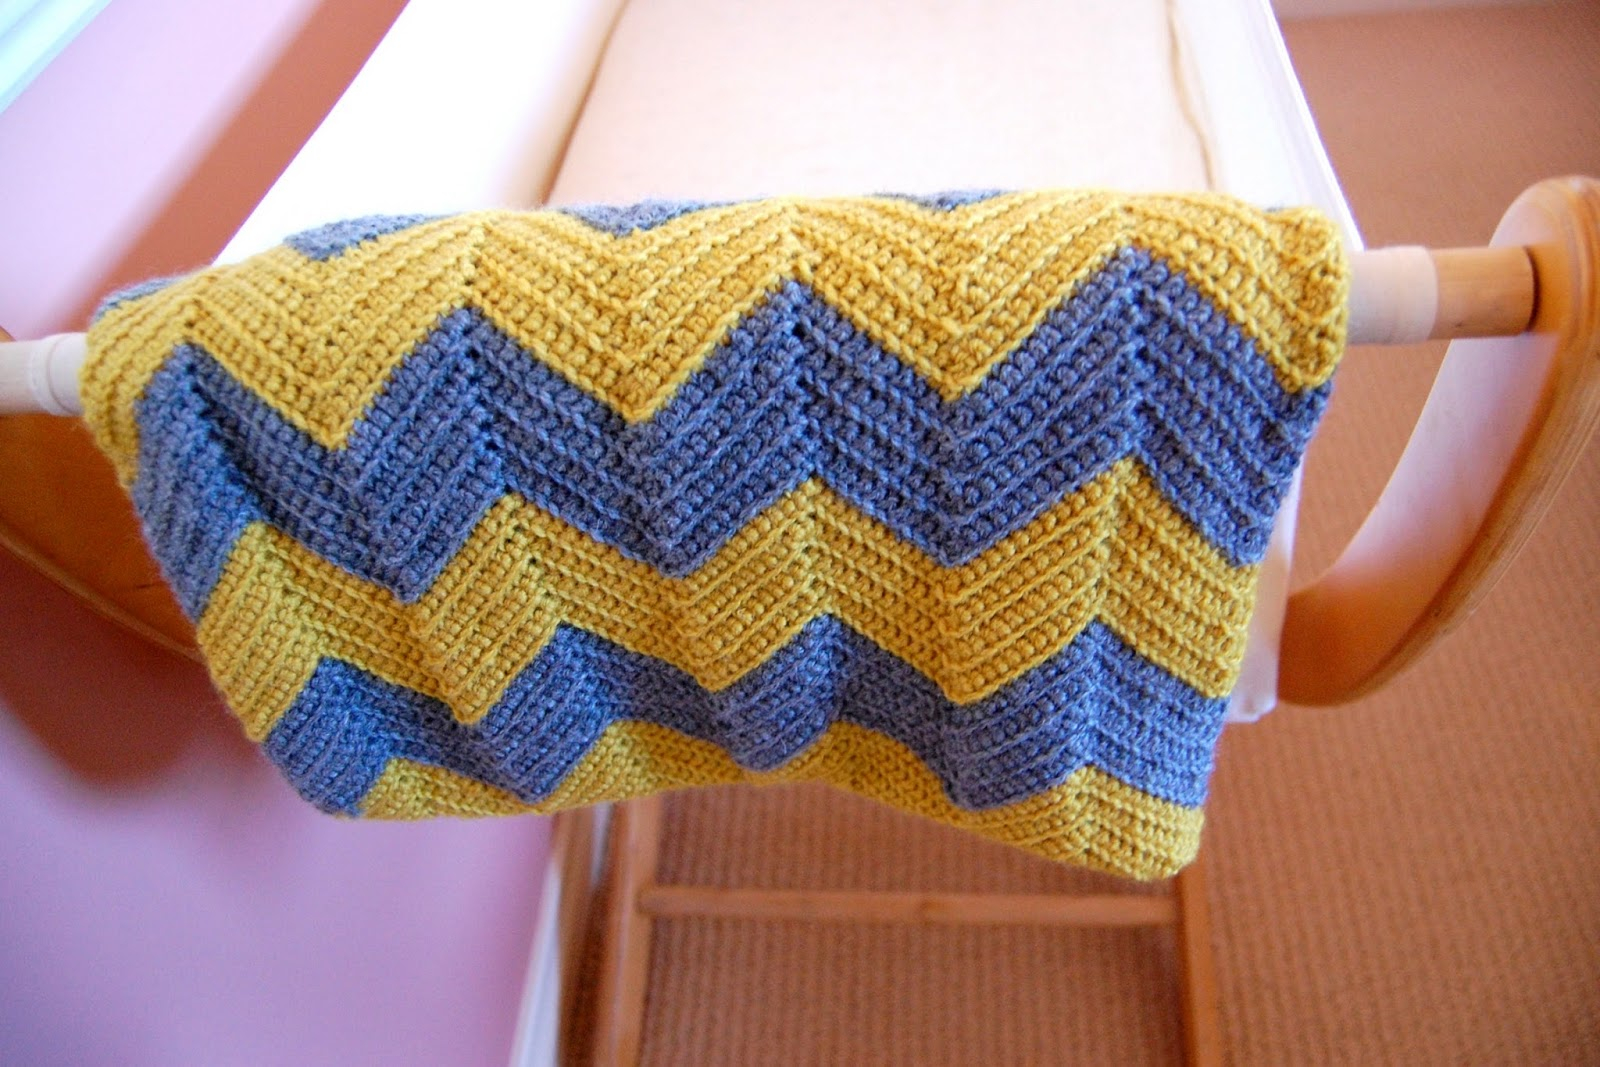 Free Crochet Pattern Baby Blanket Chevron : Yellow Dandy : DIY Crochet Chevron Baby Blanket